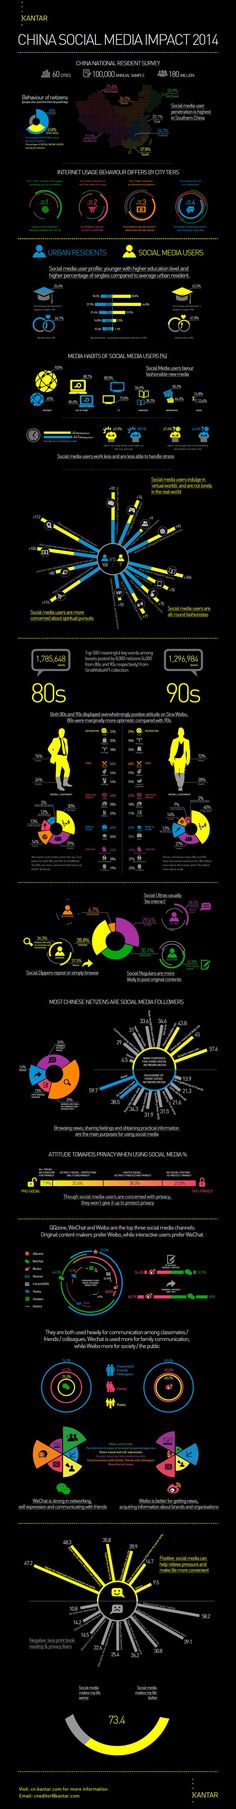 [Infographic] Resonance China | Everything you need to know about China's social media users